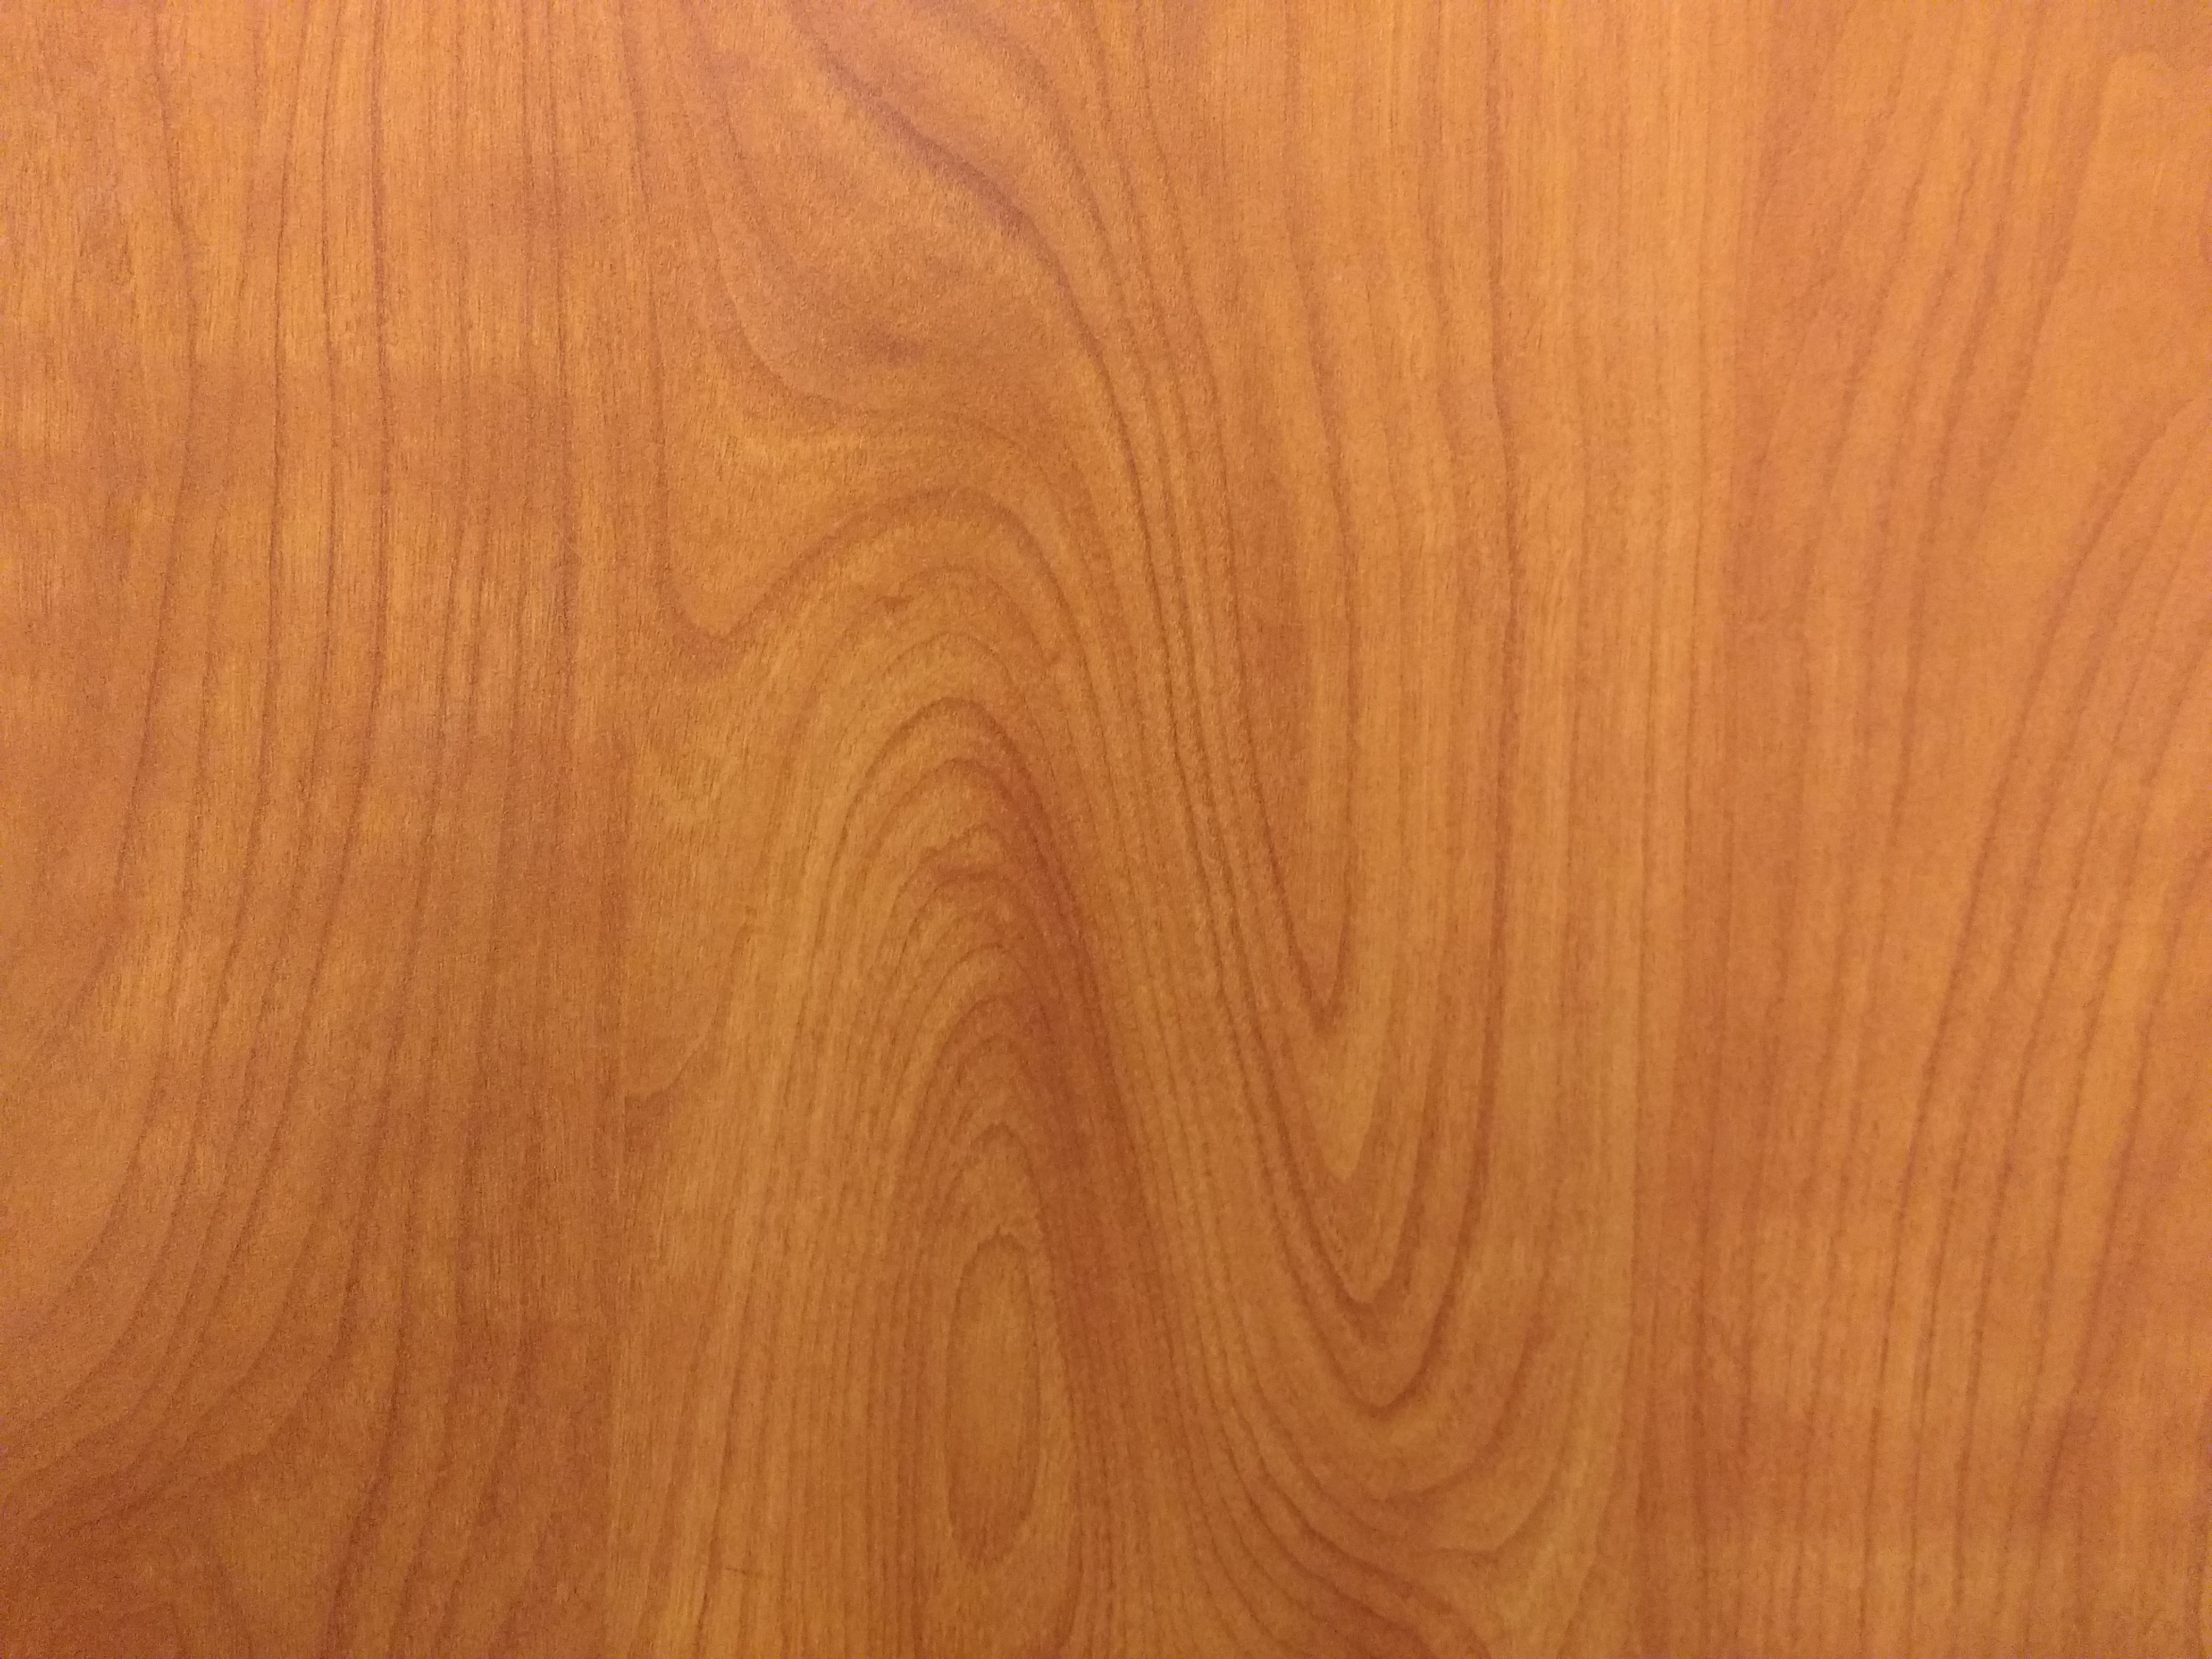 Wood Grain Texture Picture Free Photograph Photos